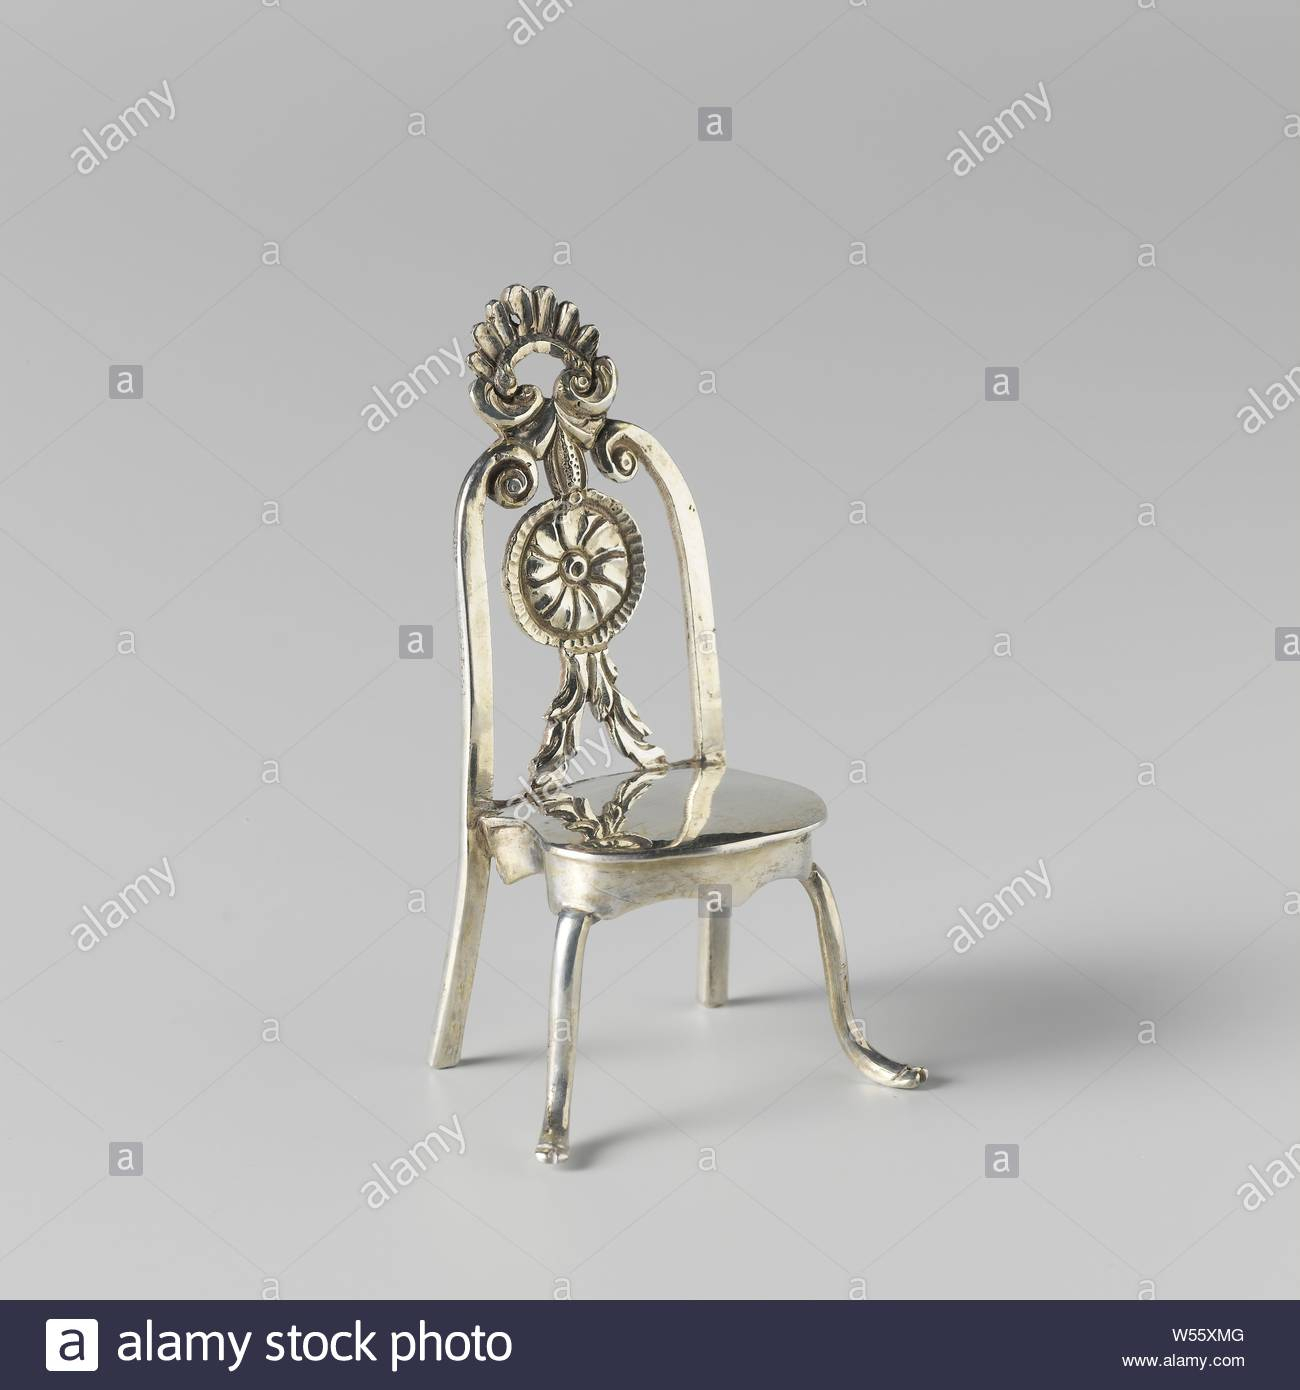 Crowned Chair Stock Photos & Crowned Chair Stock Images – Alamy In Newcombe Warm Brown Windsor Rocking Chairs (#8 of 20)